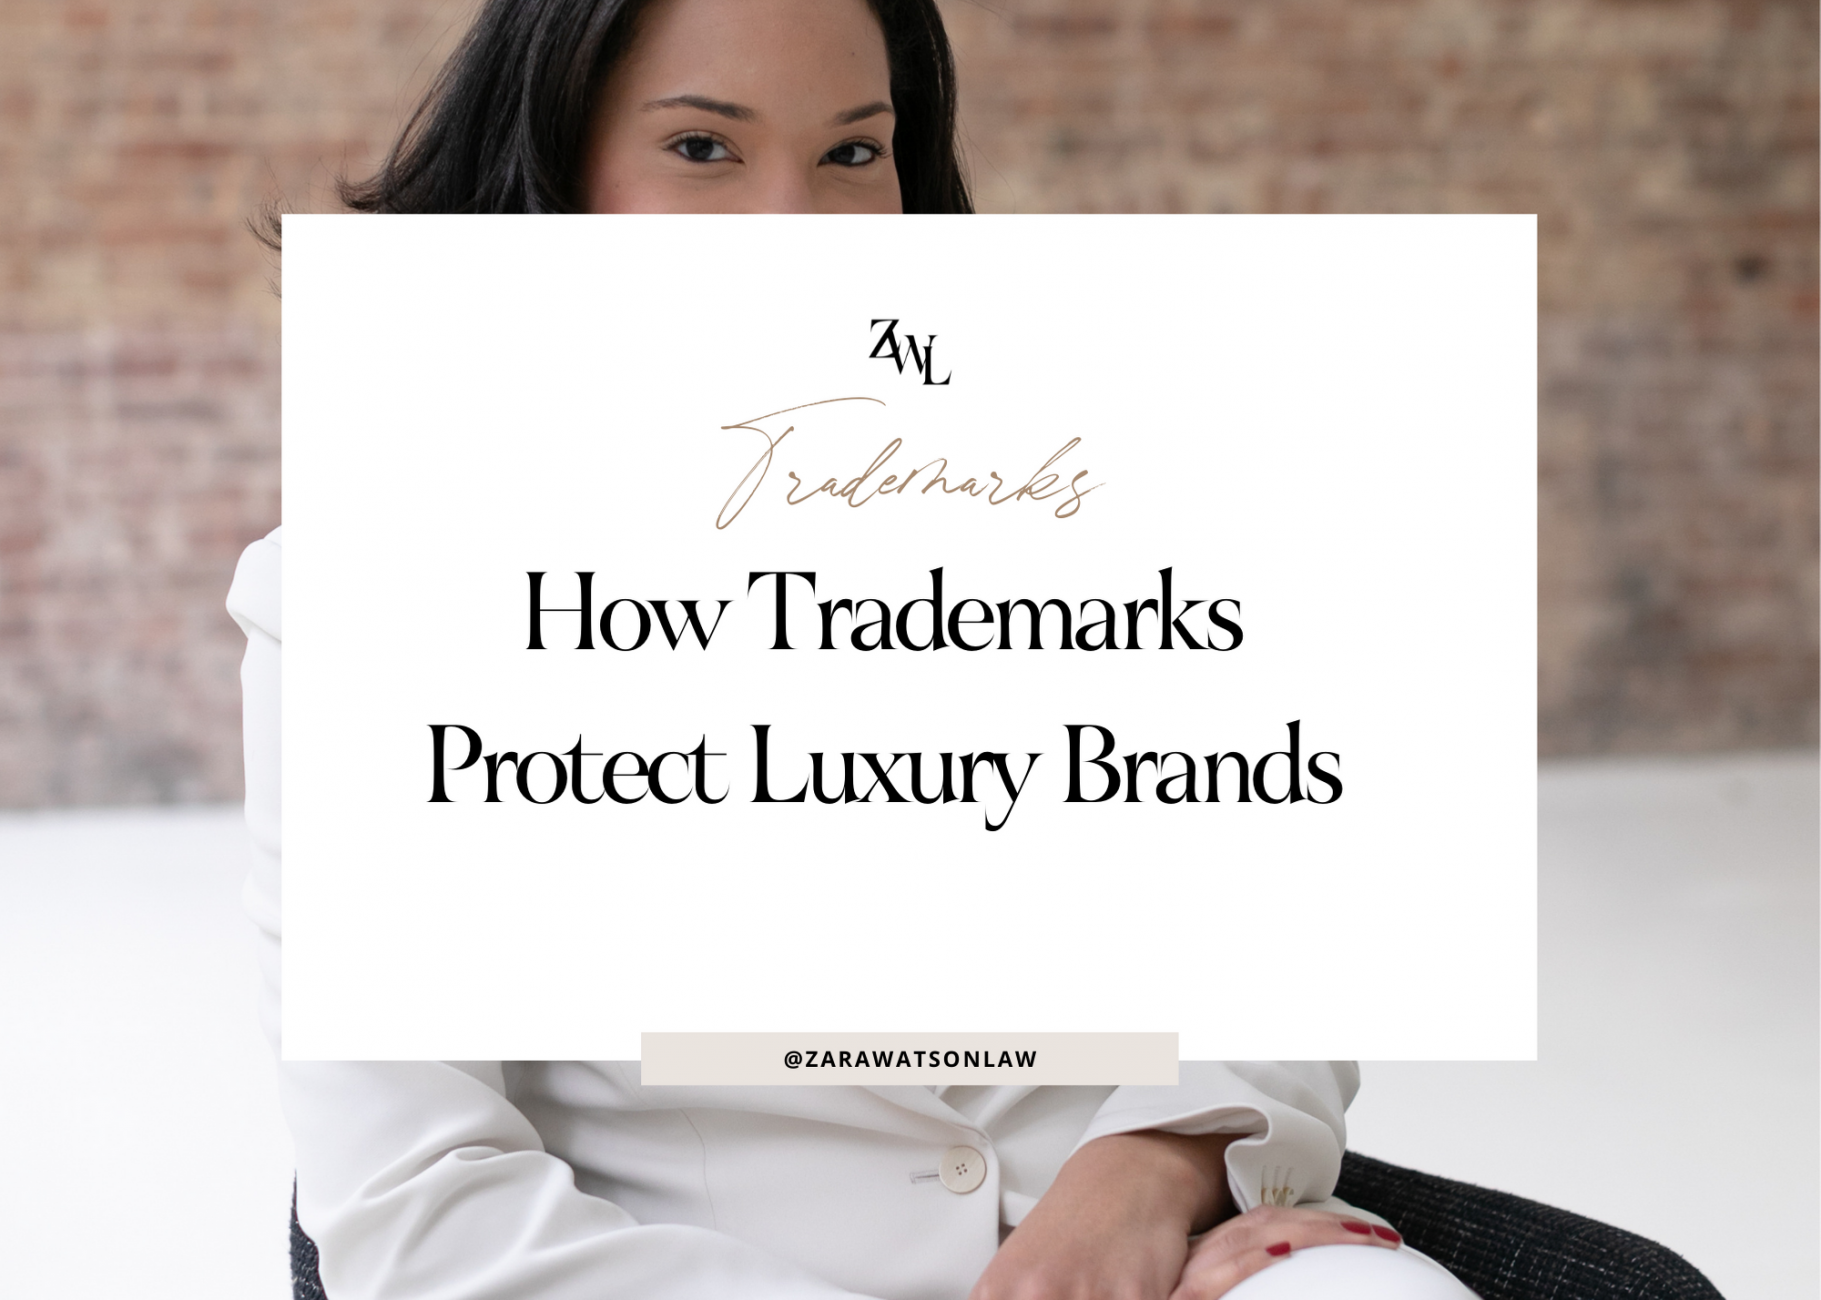 trademarks and luxury brands